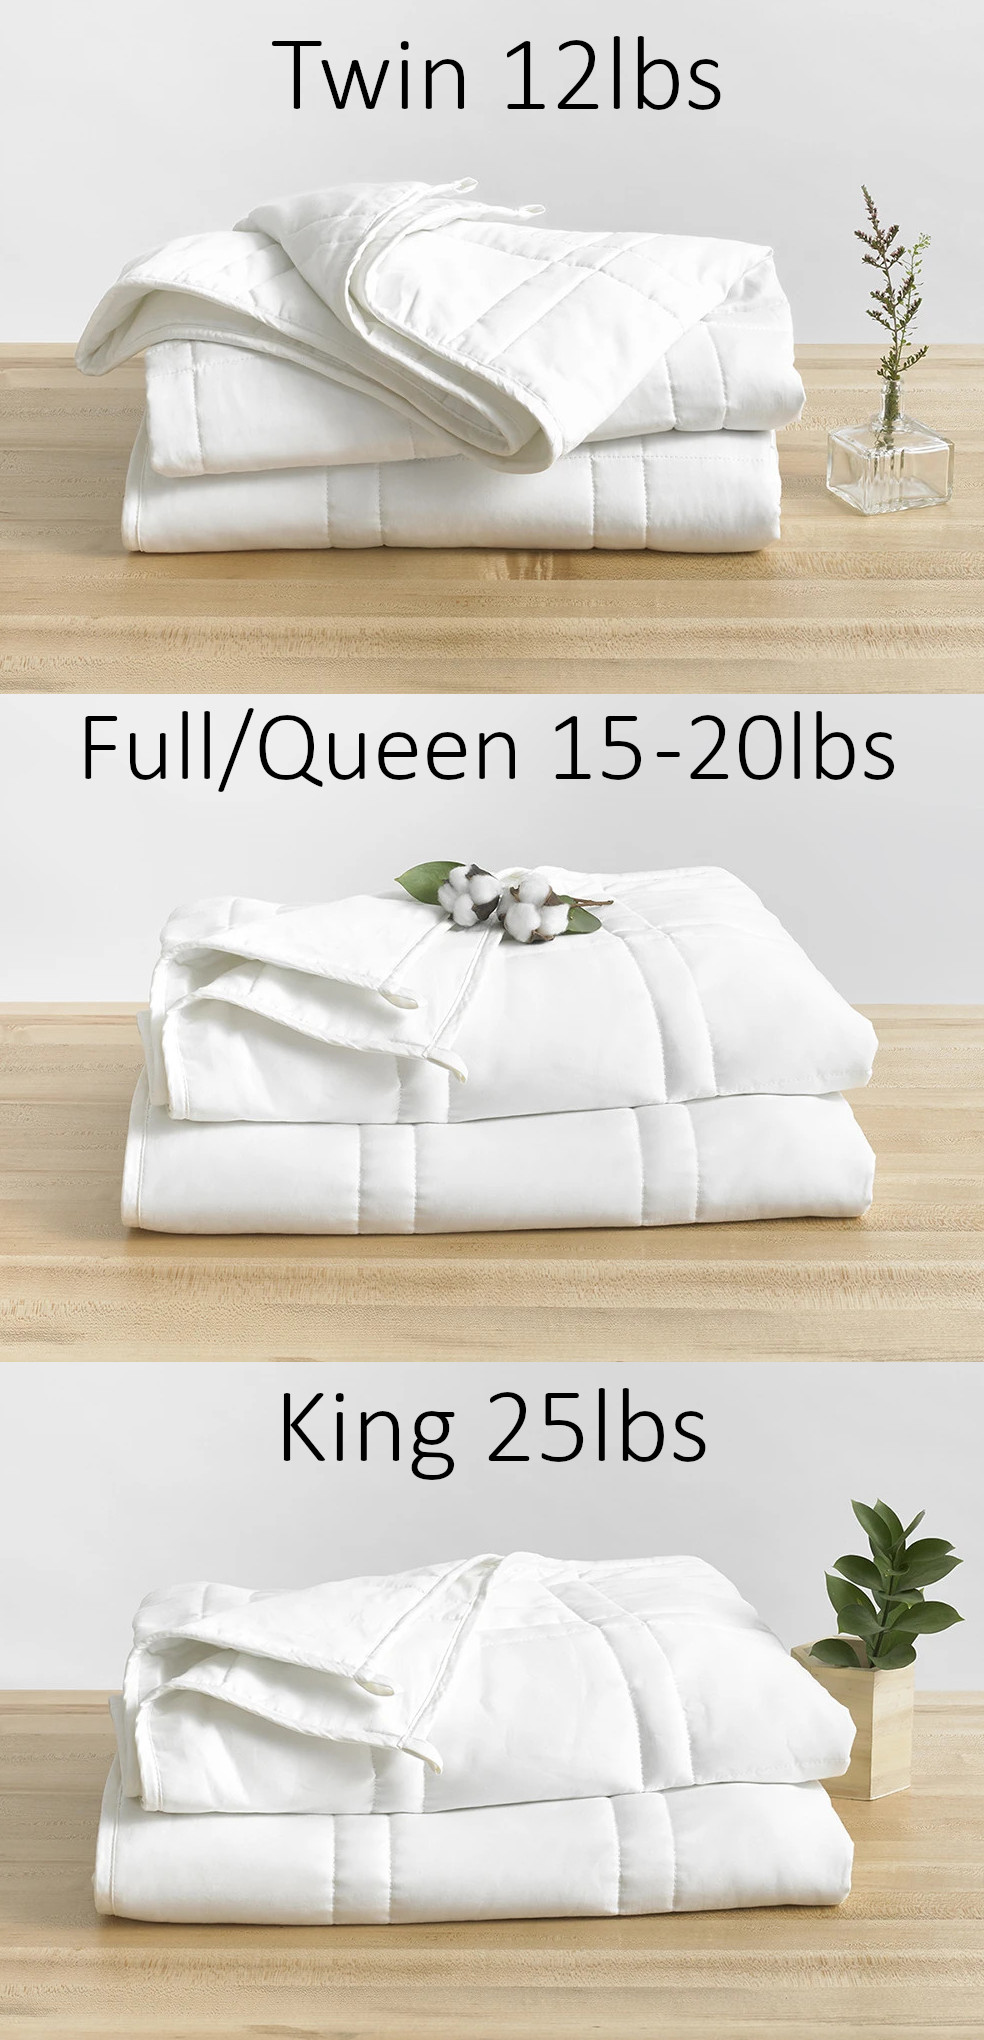 what size weighted blanket should i get?